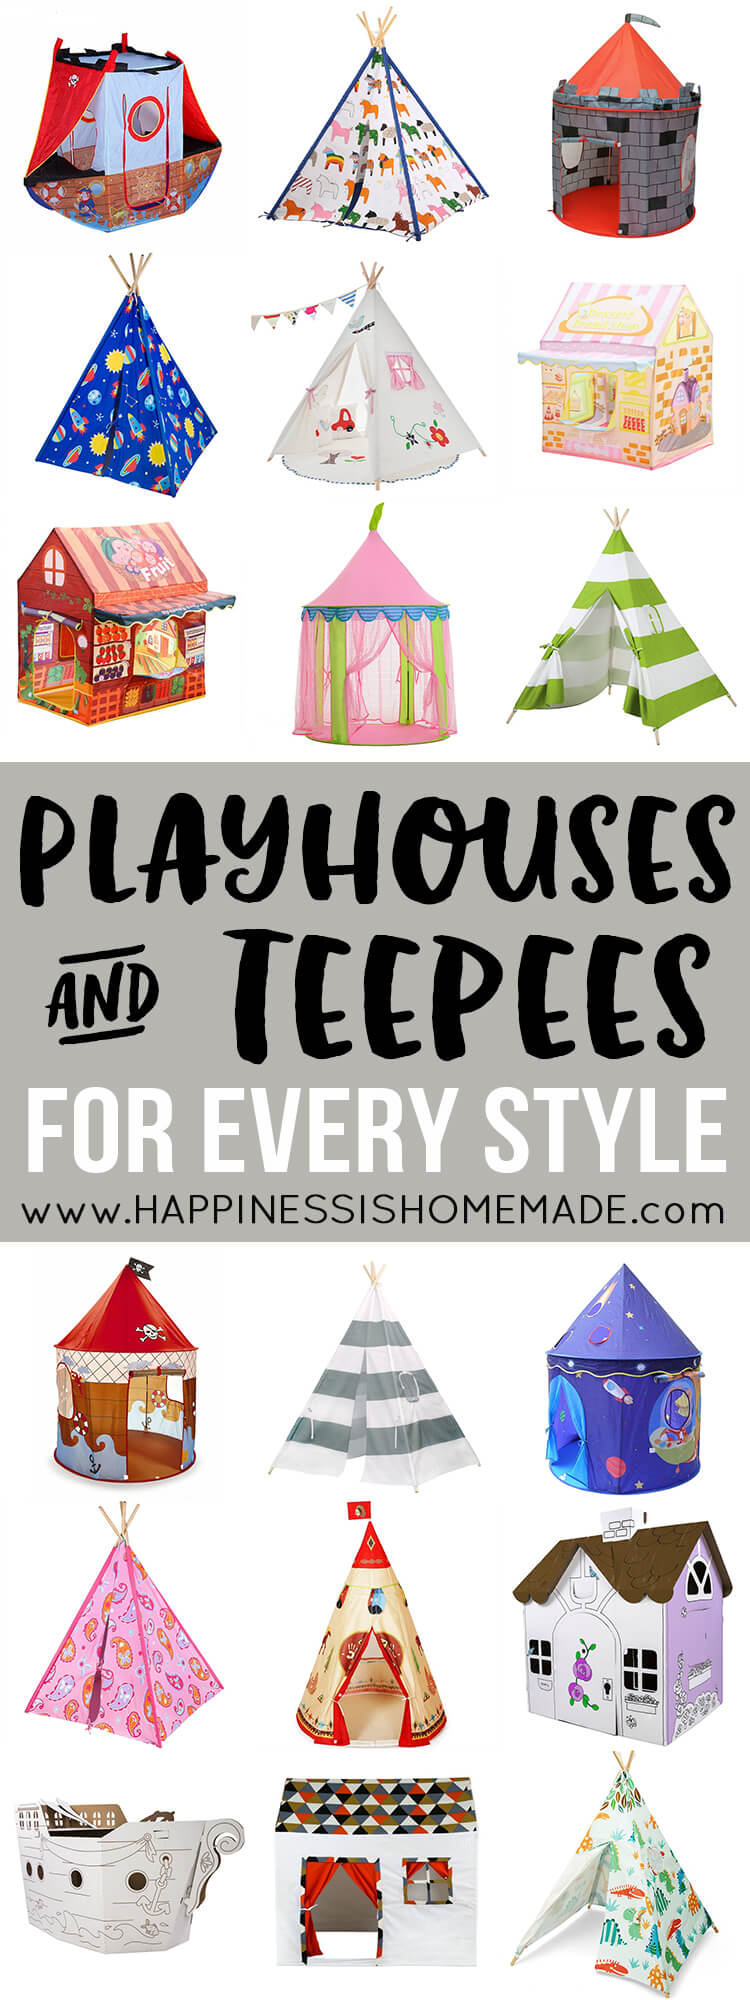 40-playhouses-and-teepees-for-every-style-great-gift-idea